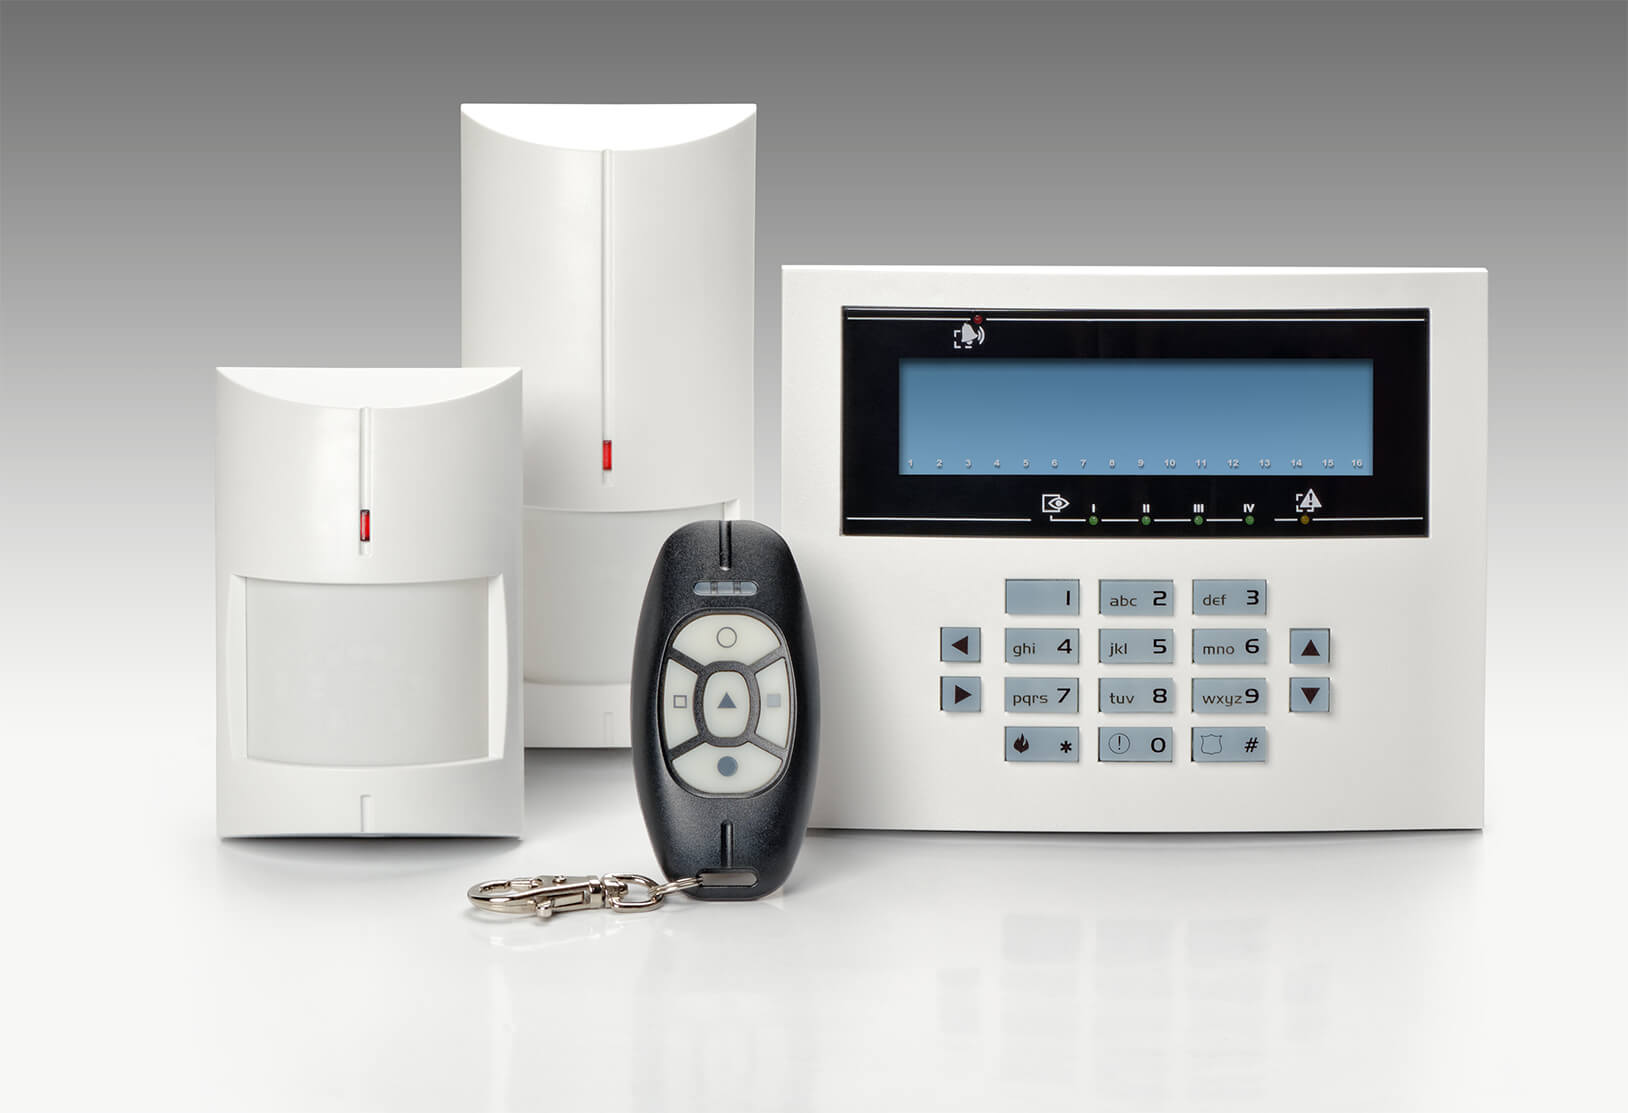 Burglar Alarms  in Barking and Dagenham IG11 - Local Barking and Dagenham IG11 alarm engineers.Call 02078872244 - SEE PRICE of Burglar Alarms  in Barking and Dagenham IG11 and book your alarm engineer. No Hidden charges,No Contracts, Book as you need.Engineers on demand.All alarm makes repaired.Same day service ability.